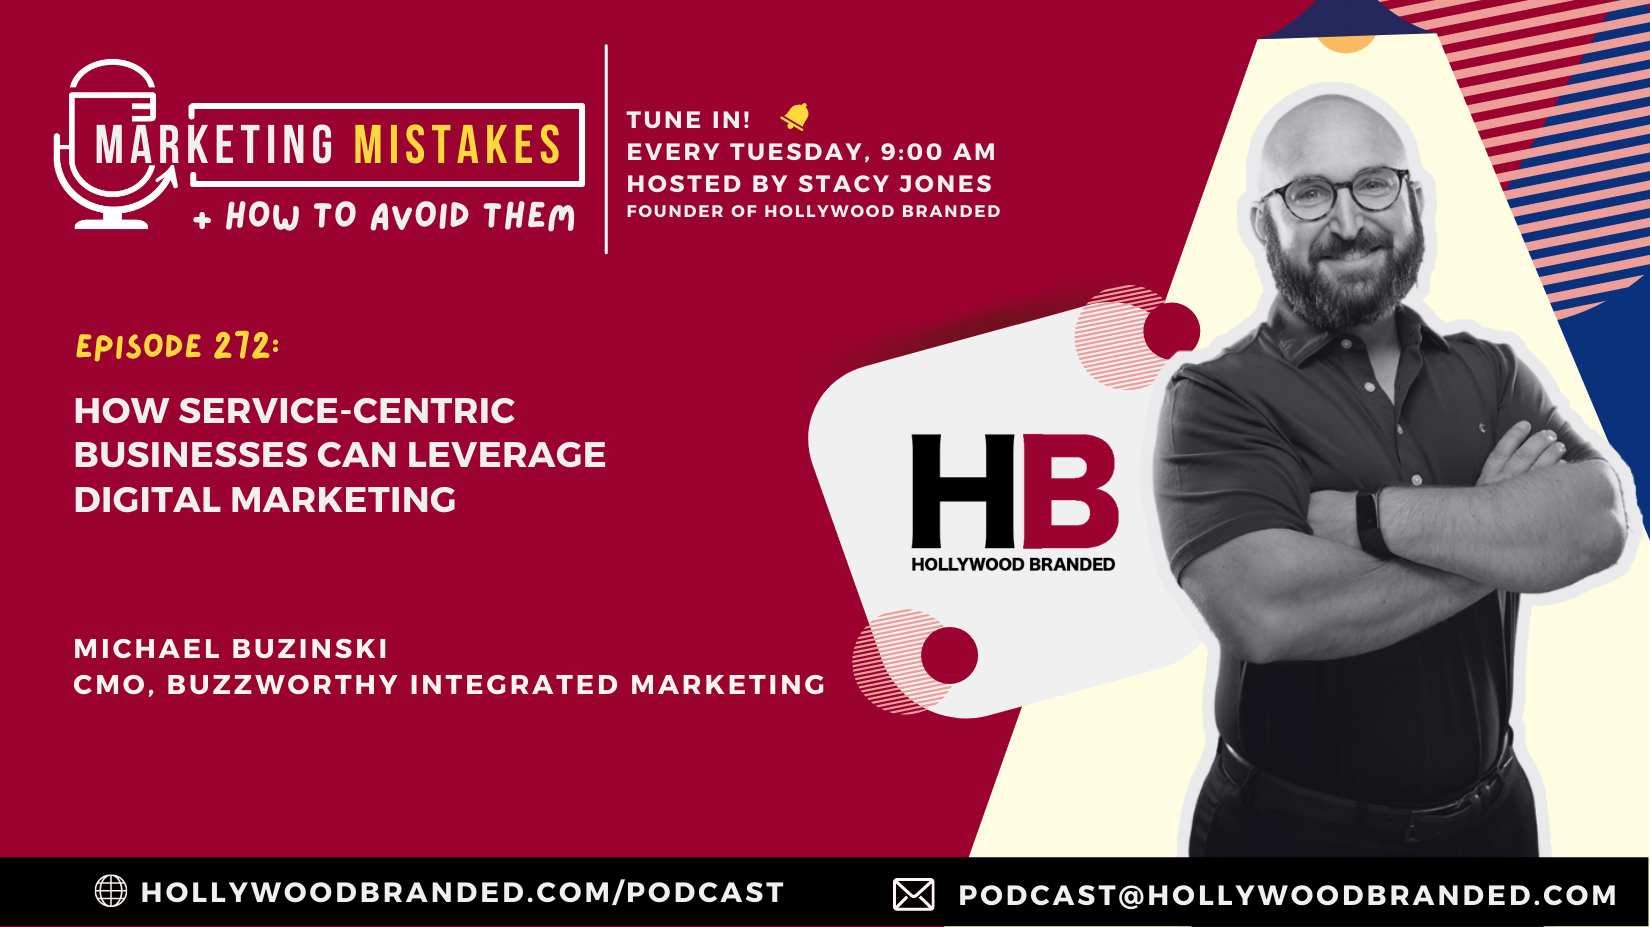 EP272 How Service-Centric Businesses Can Leverage Digital Marketing